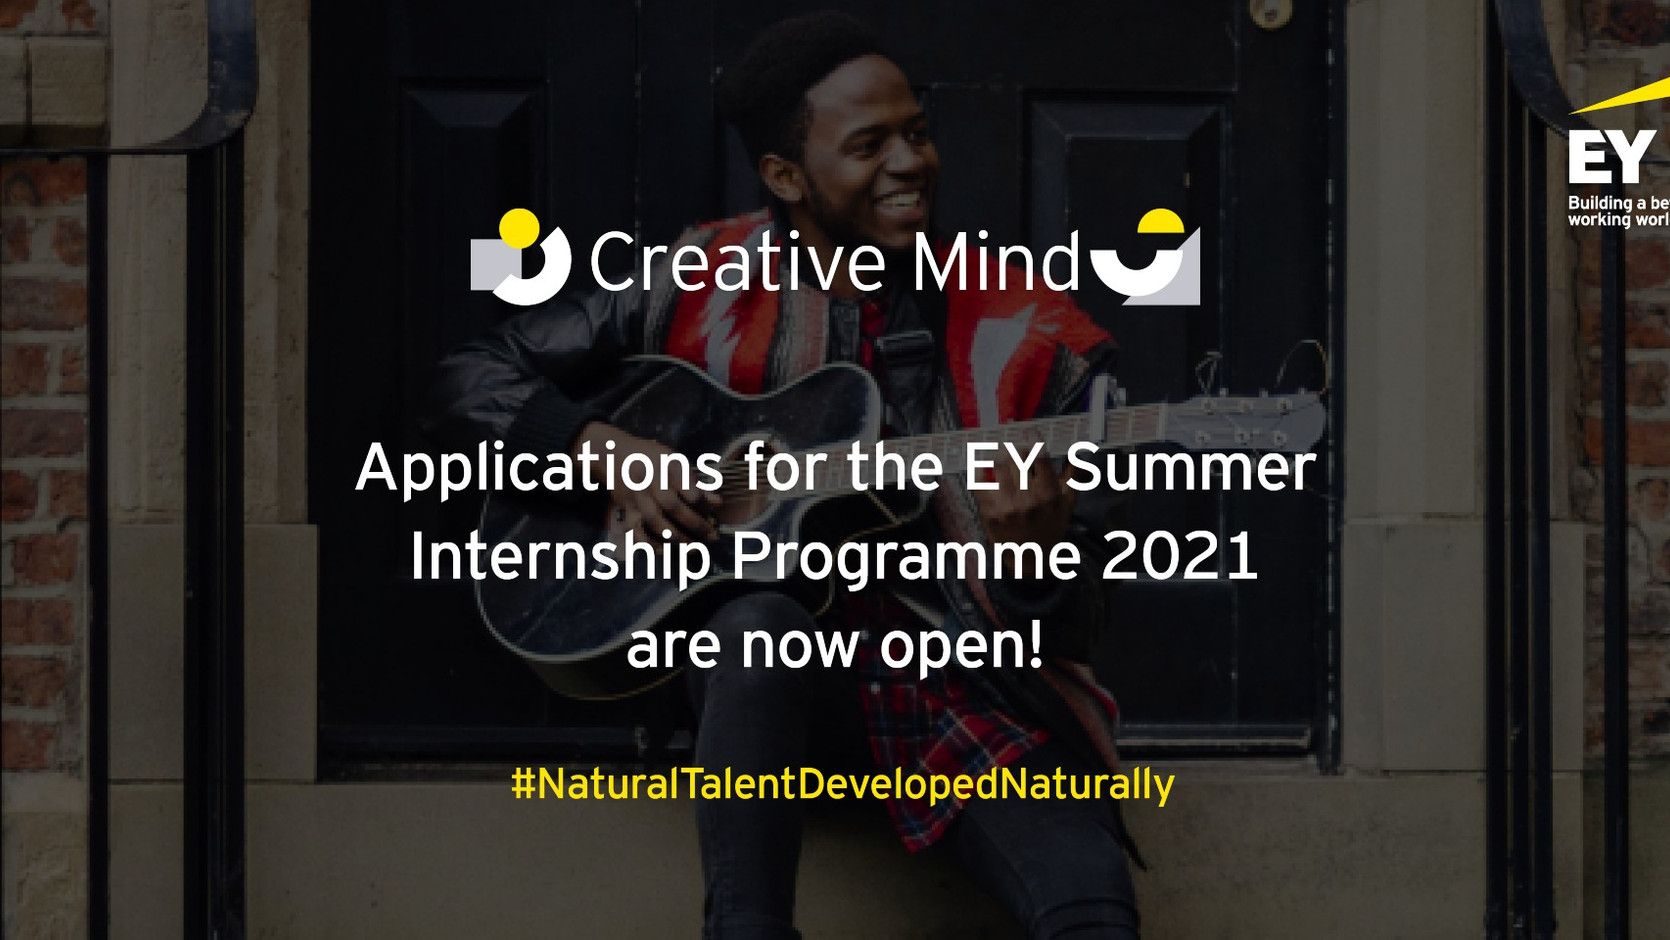 EY Summer Internship Programme 2021